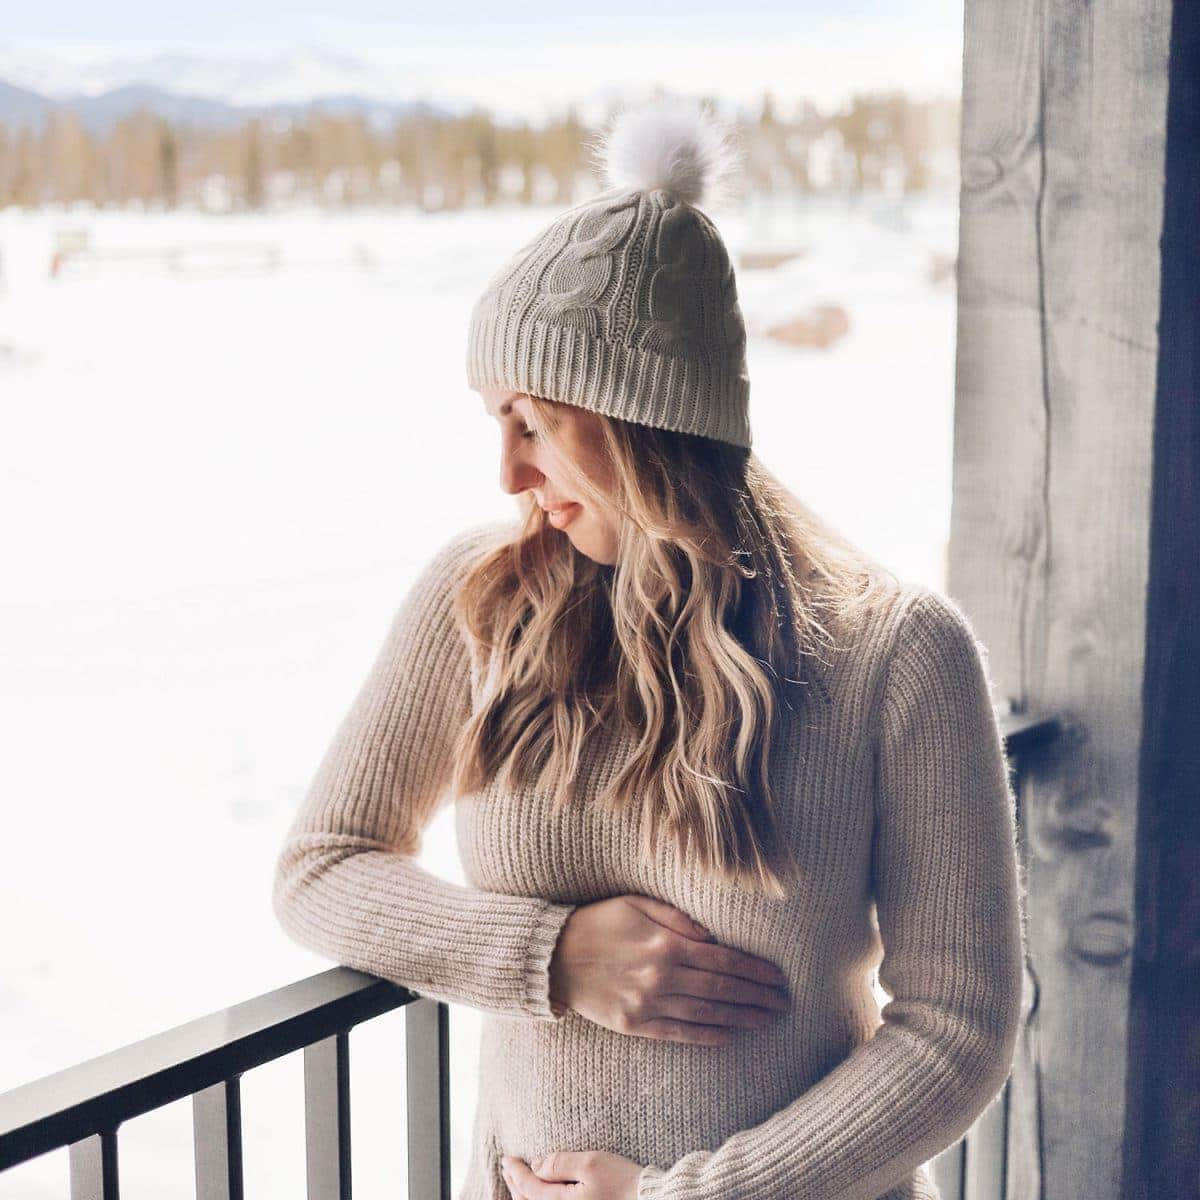 Houston blogger Meg O. shares her family ski trip to Winter Park, Colorado - Devil's Thumb Ranch is a beautiful spot to relax